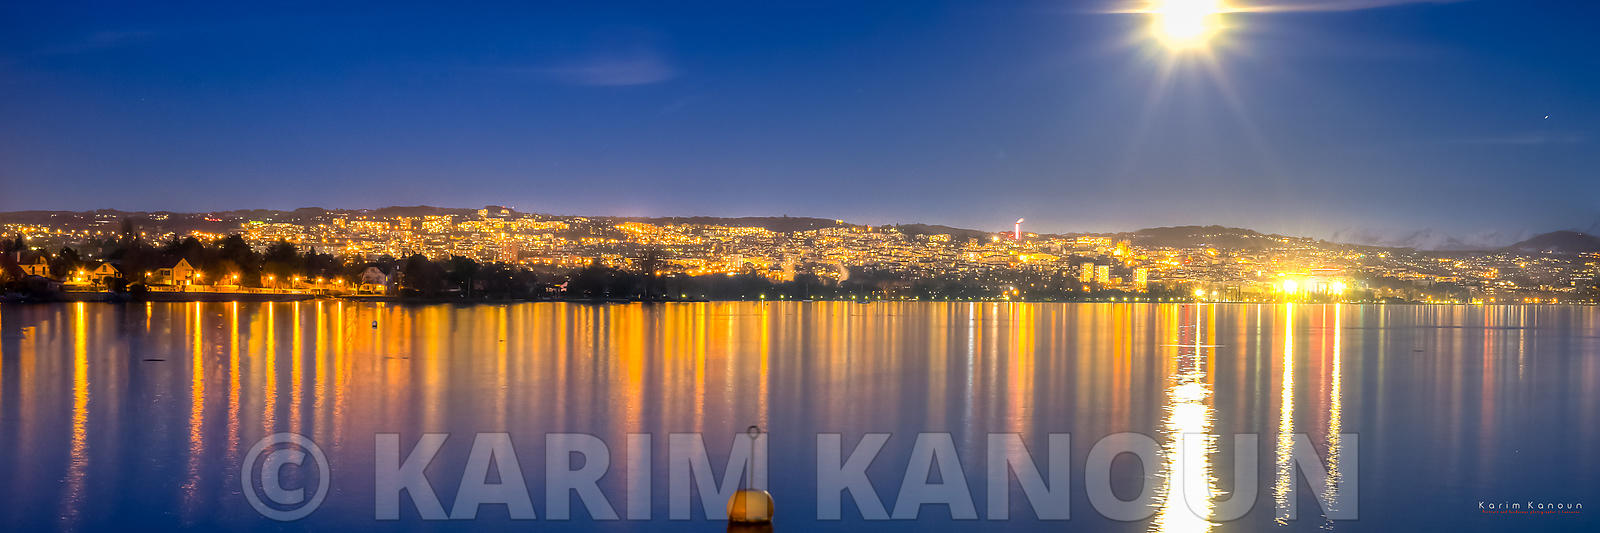 Lausanne by night under the full moon with refelection on Lac Léman